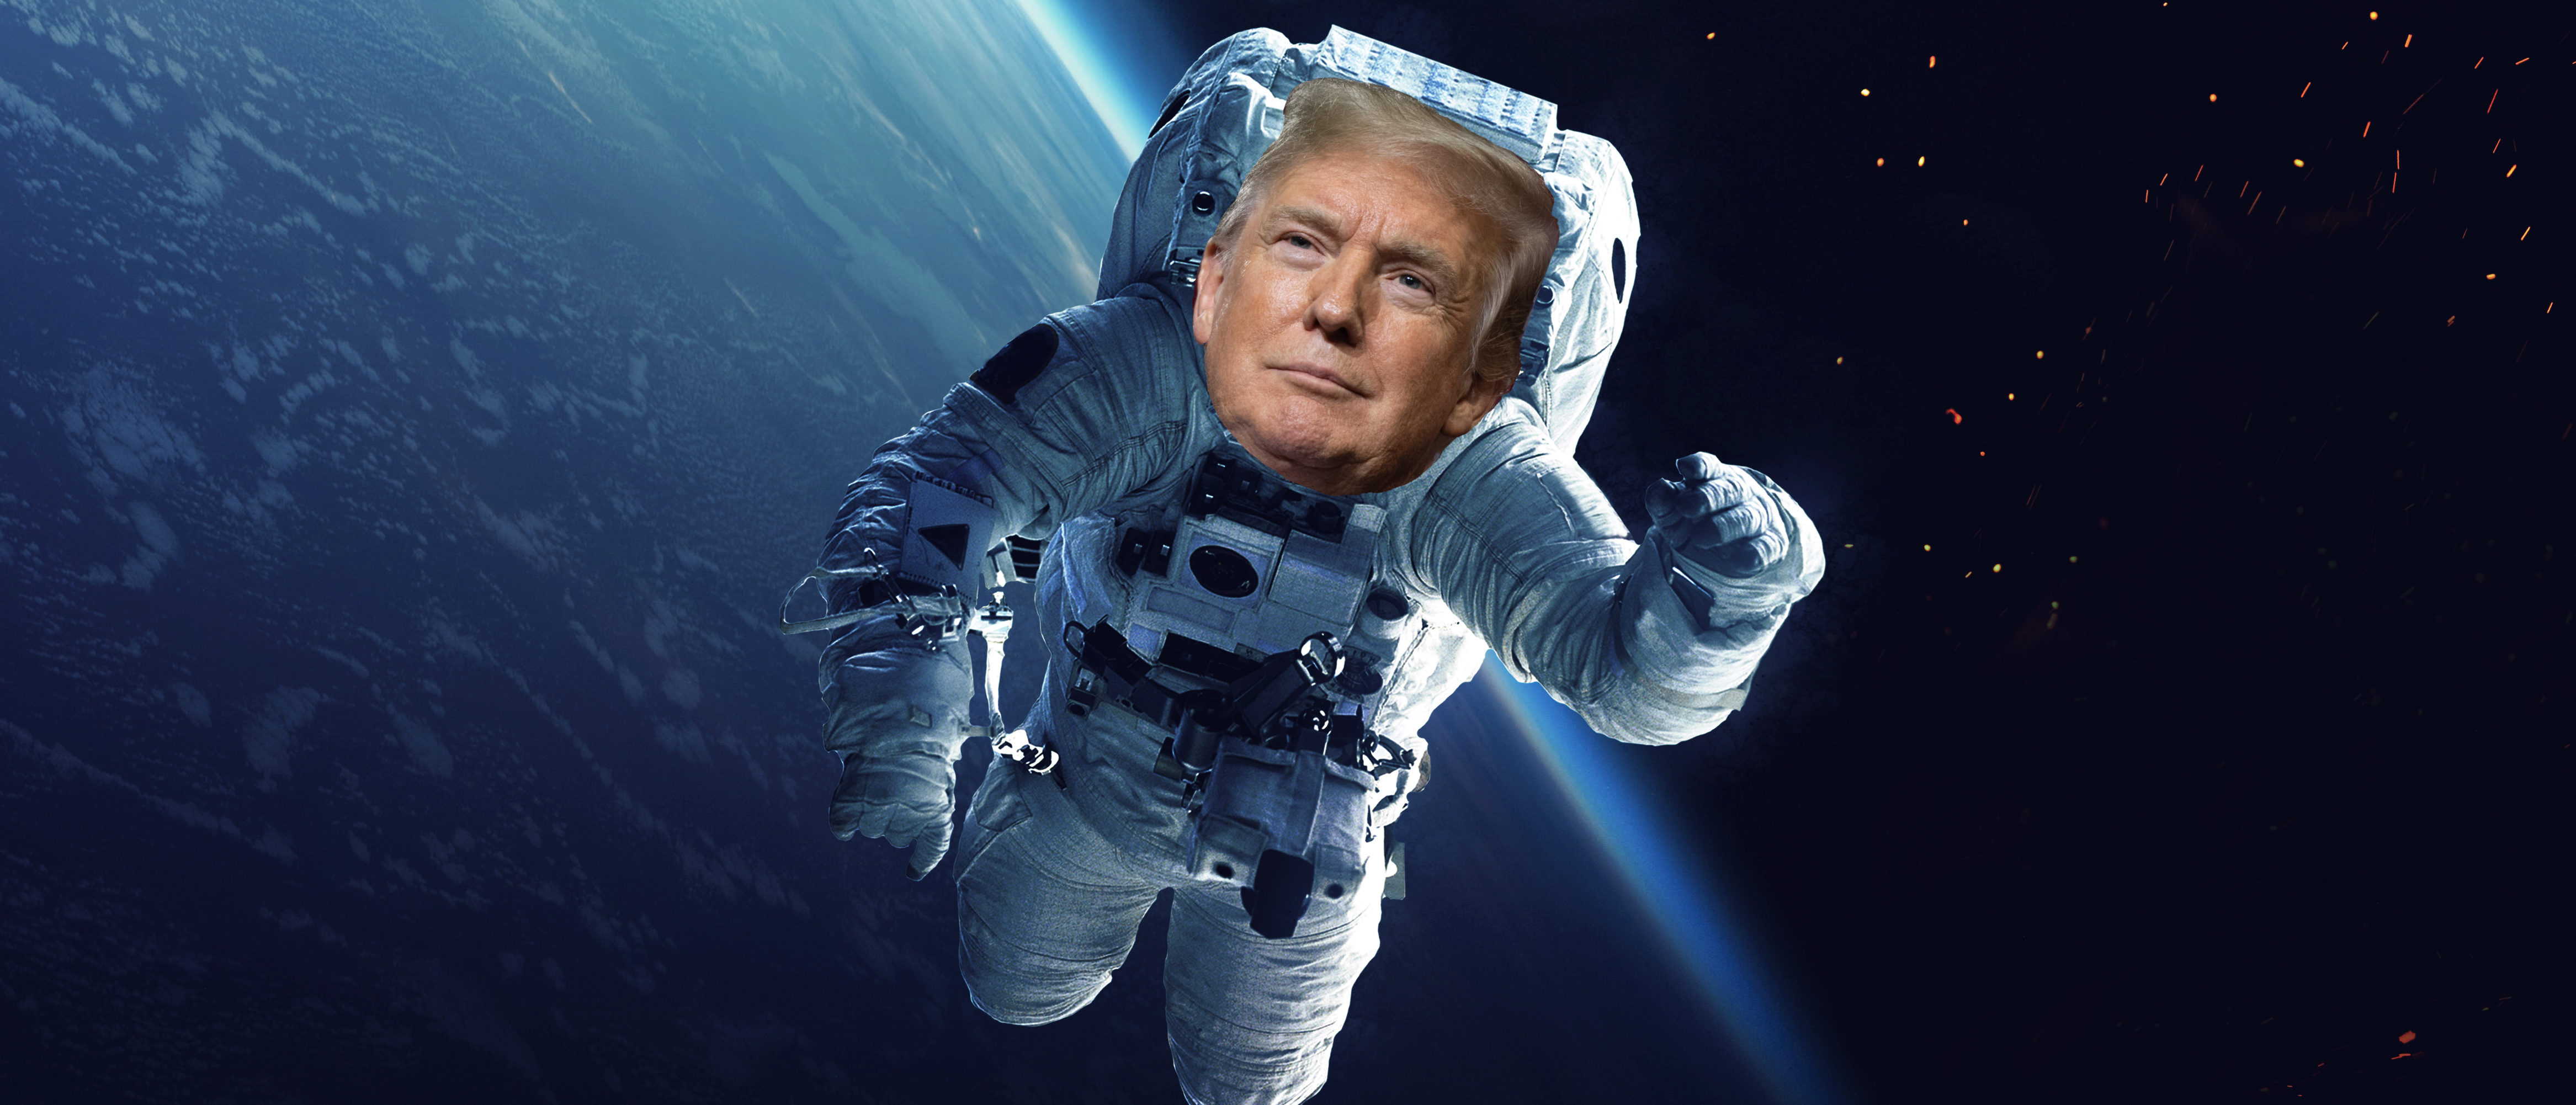 President Trump Continues To Make Space A Priority